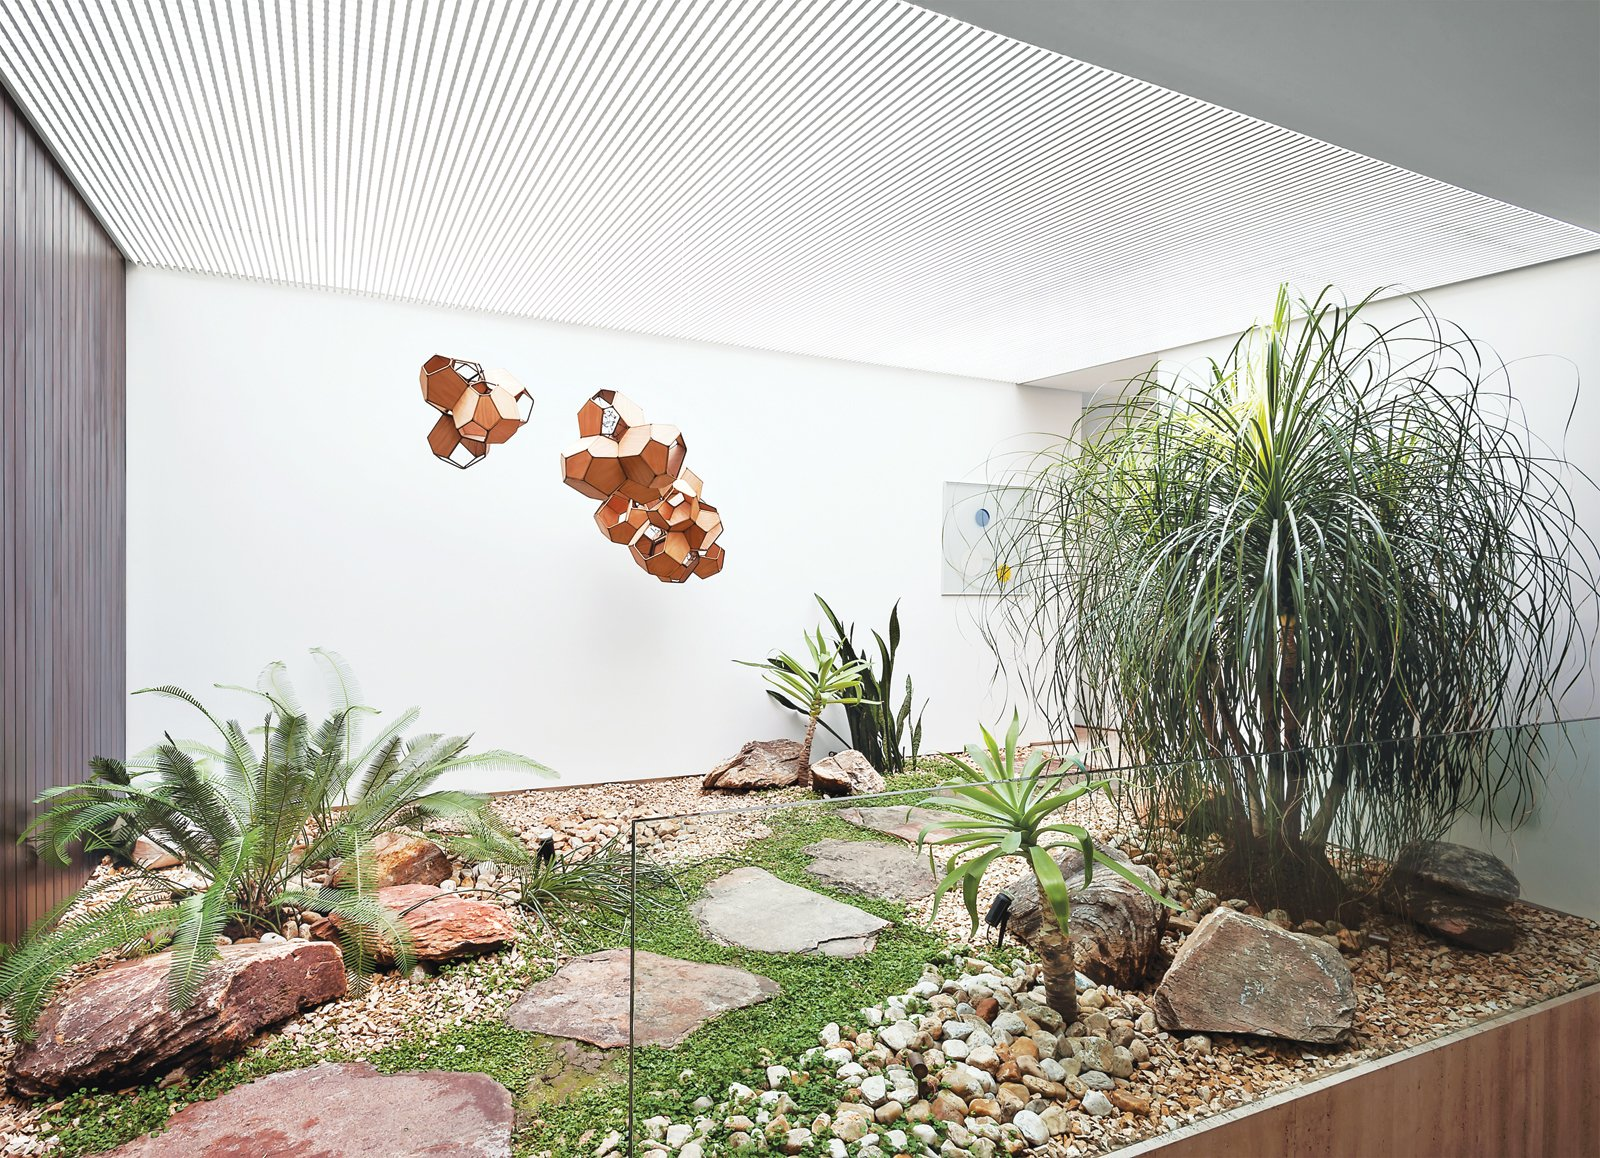 A small interior courtyard features a huge skylight and the sculpture Air-Port-City/Cloud-City/ 14-5-4 Cloud Modules 30 Net by Tomás Saraceno.  Impressive Indoor Gardens by Allie Weiss from Blockbuster Movies Can't Compete with These Monumental Views